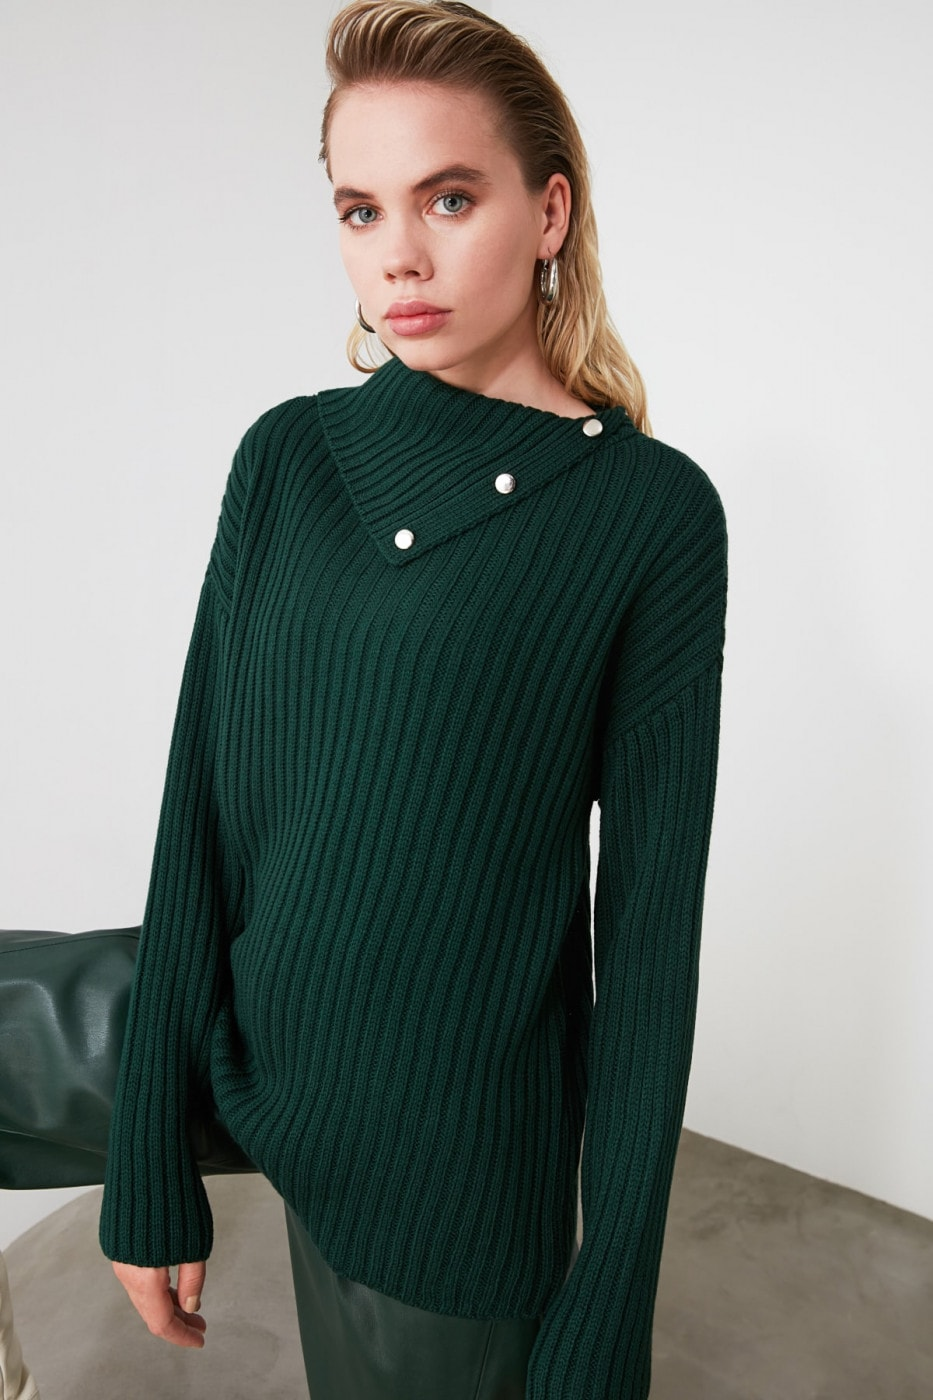 Trendyol Emerald Green Wipe Collar Knit Sweater